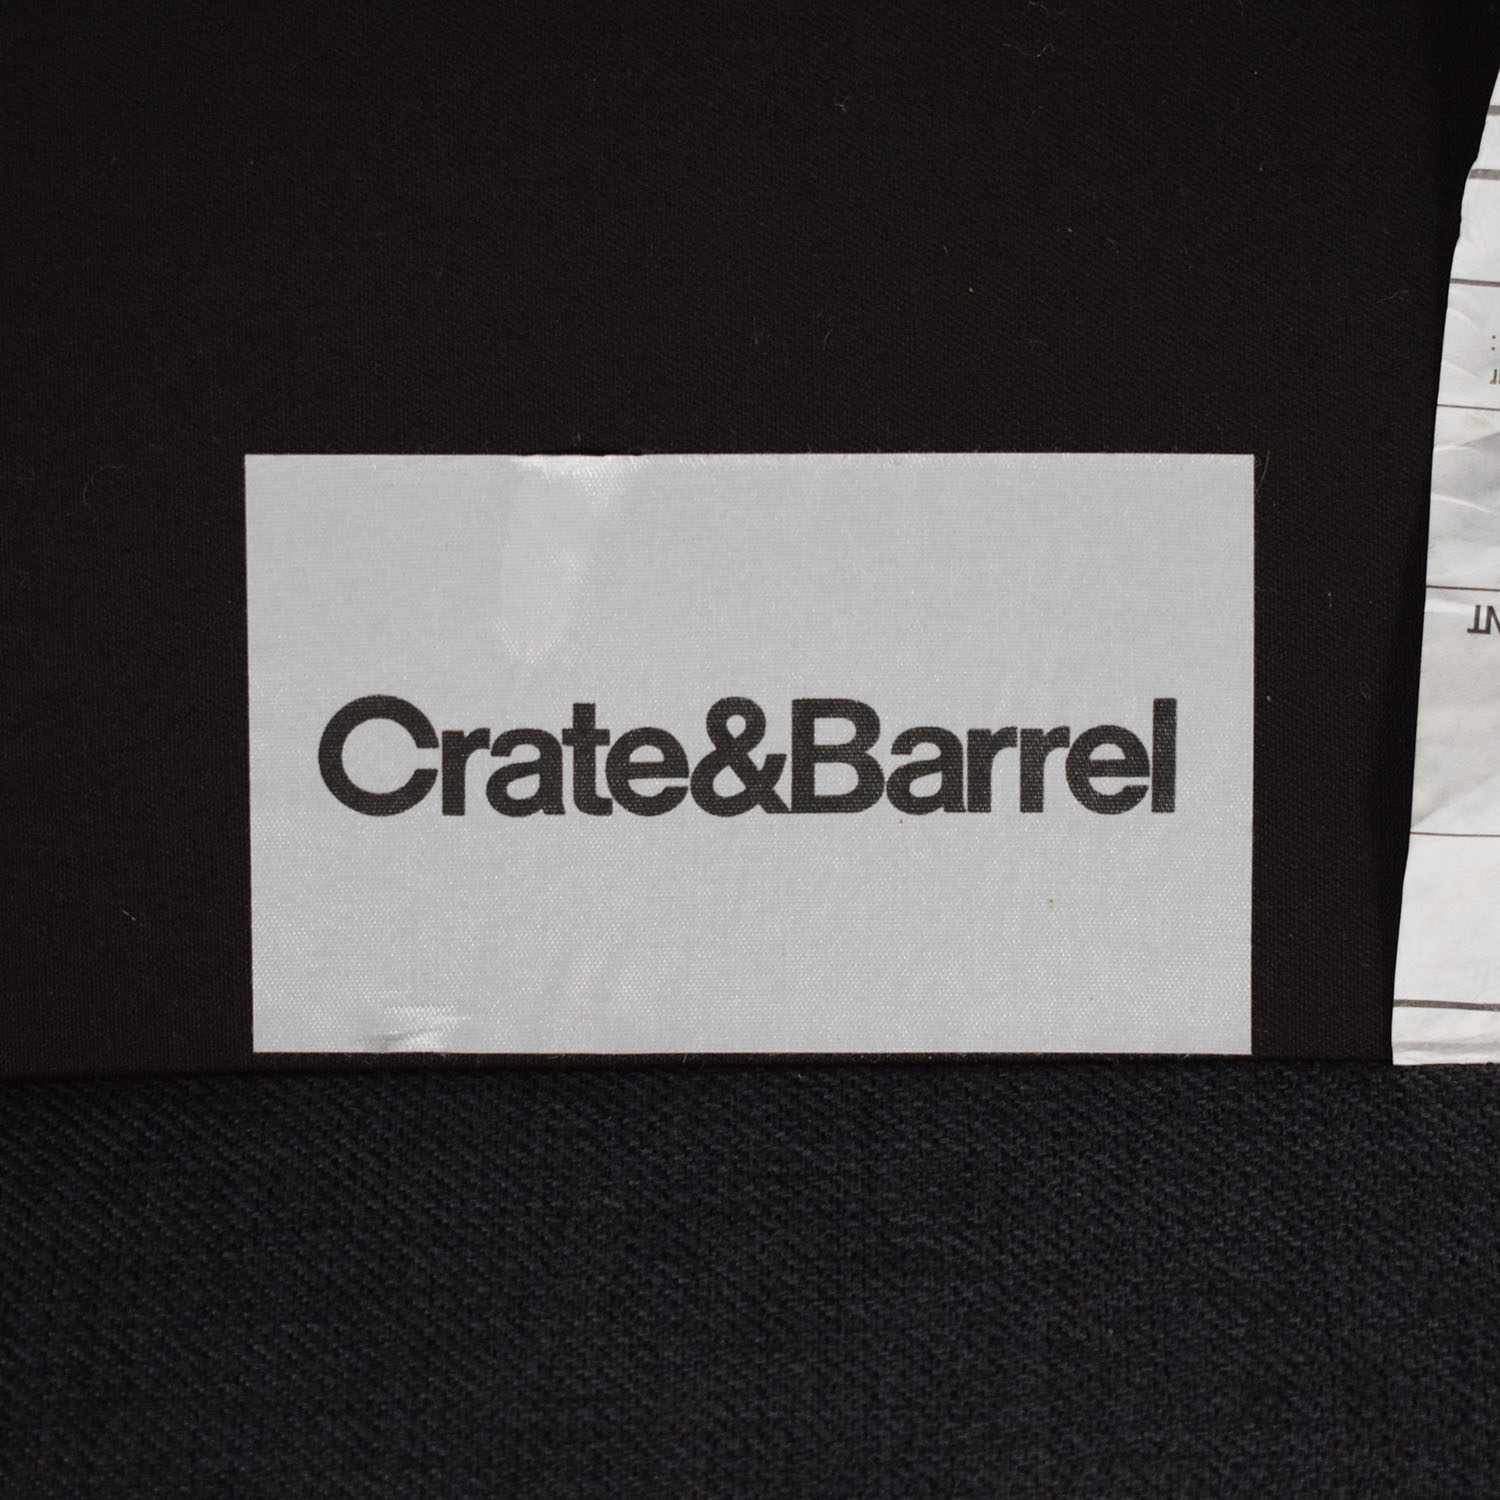 Crate & Barrel Crate & Barrel Petrie Apartment Sofa Sofas